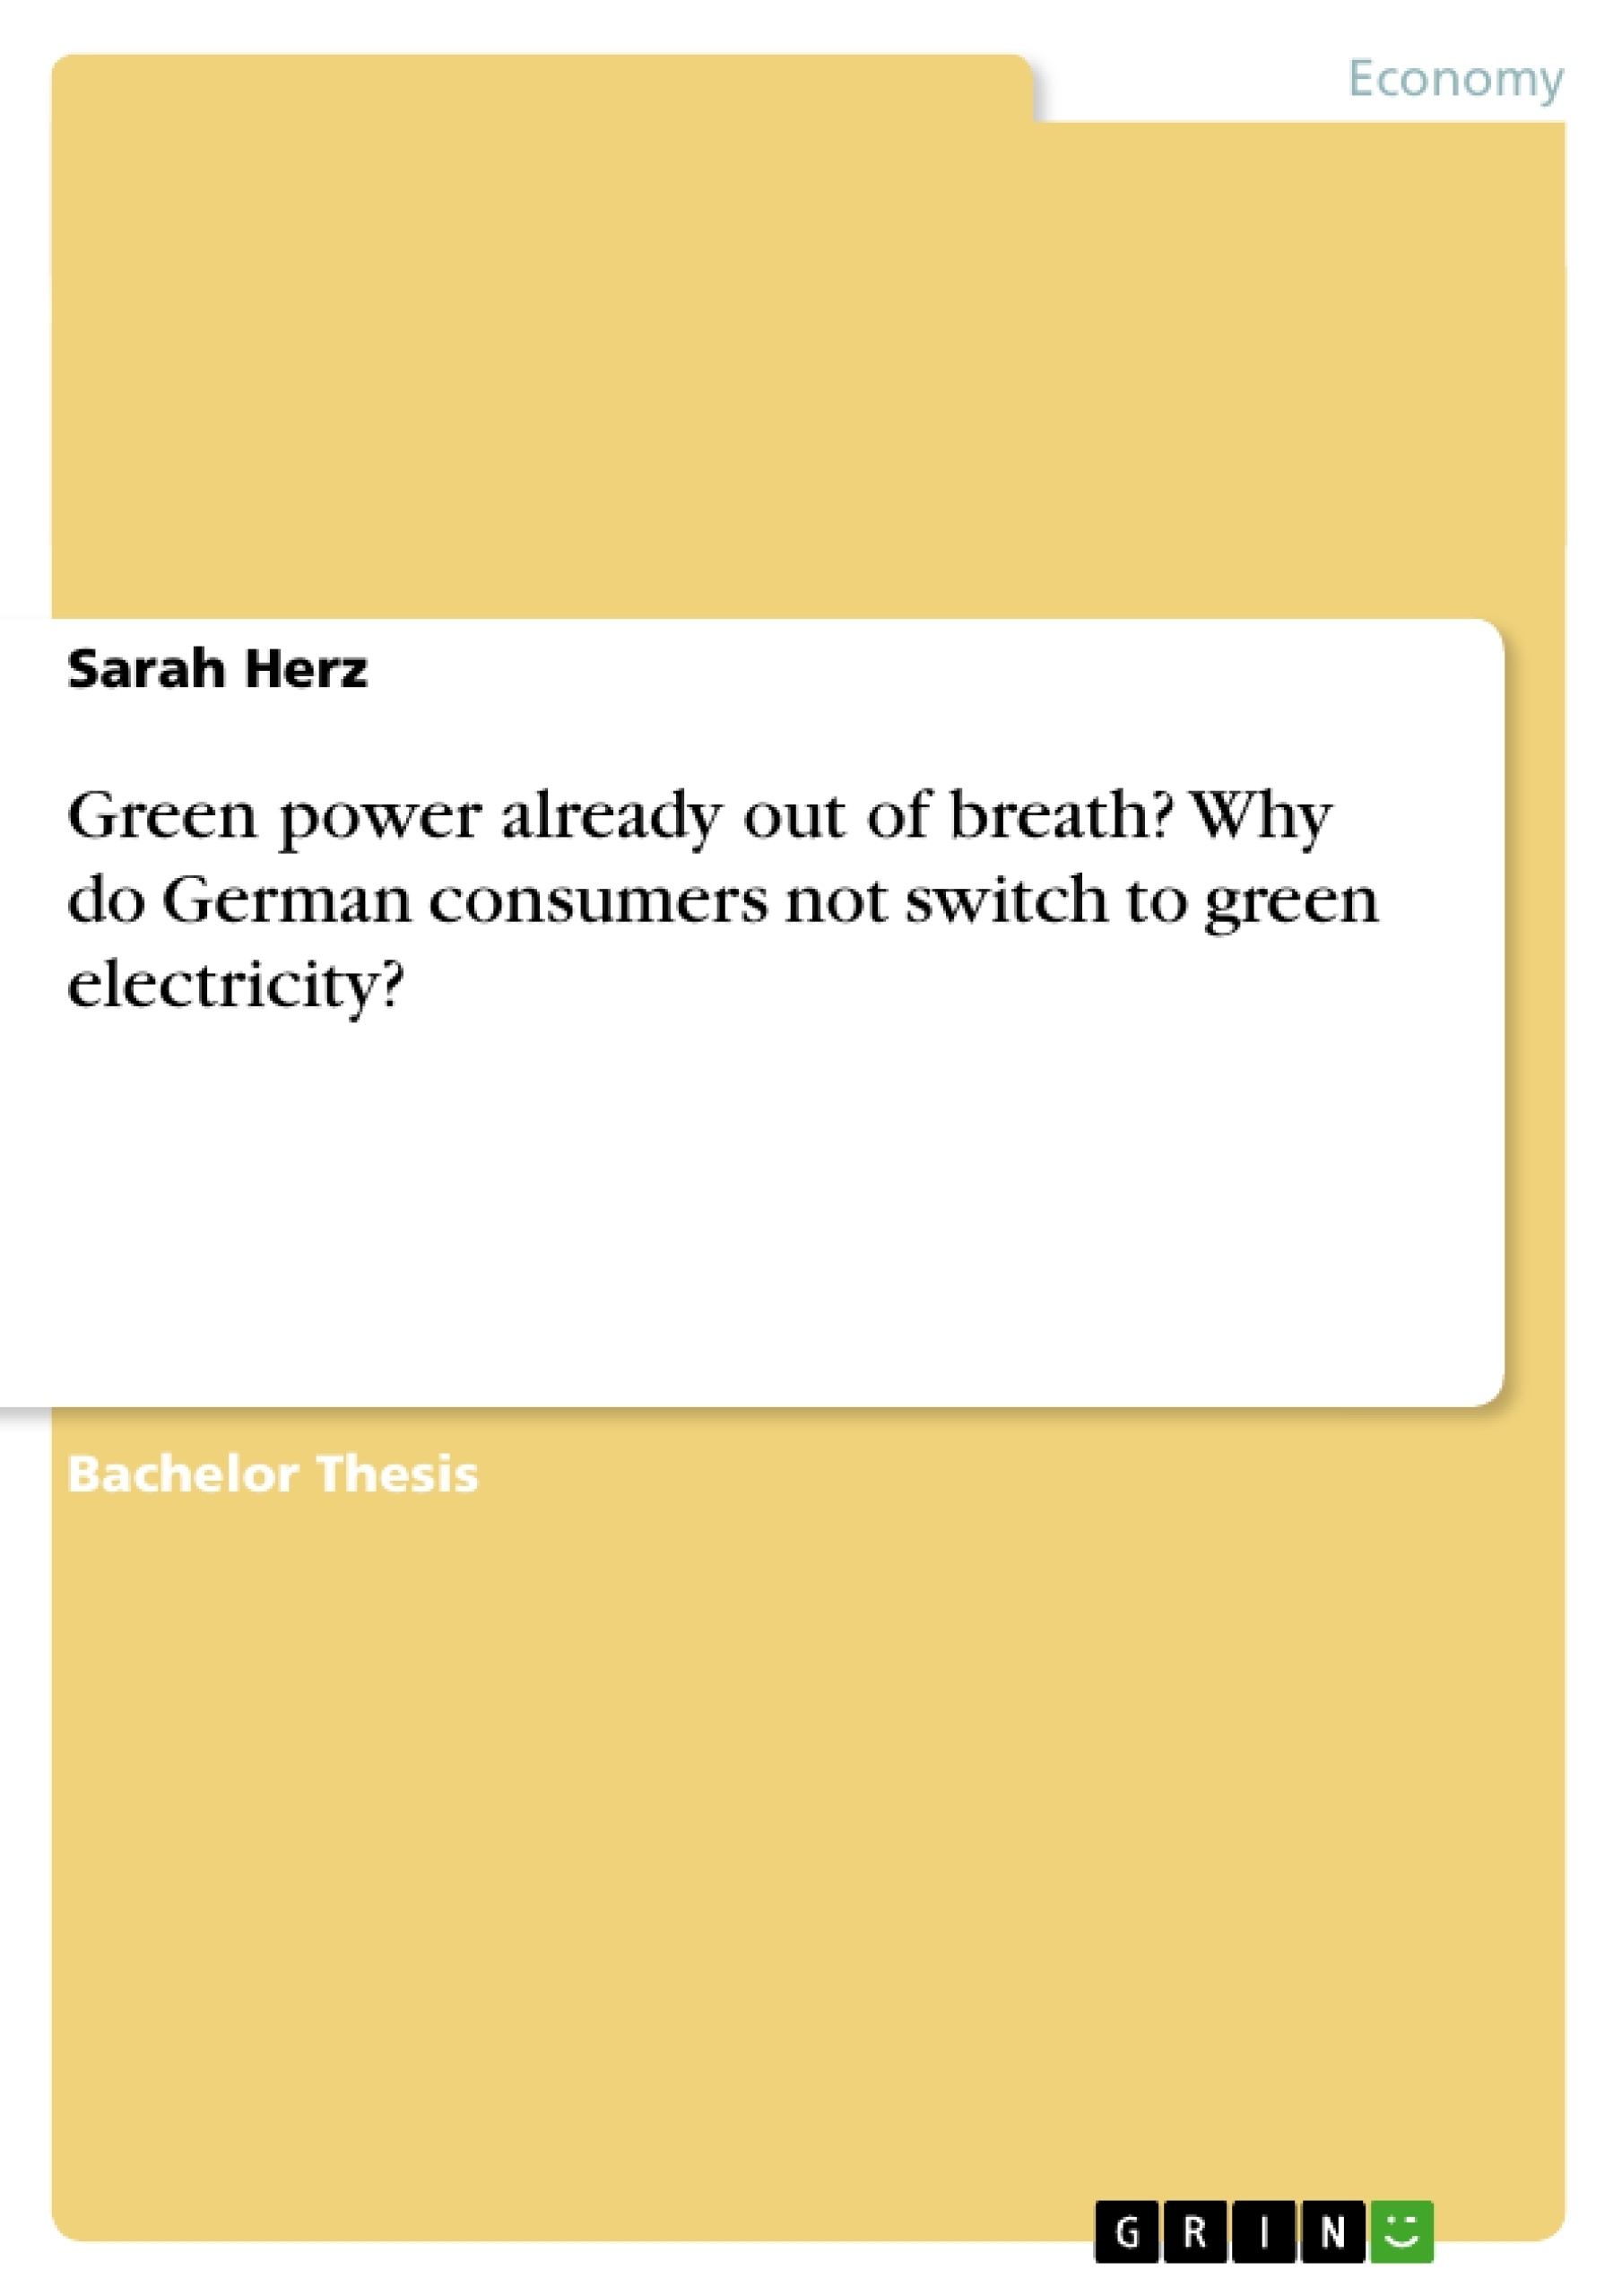 Title: Green power already out of breath? Why do German consumers not switch to green electricity?